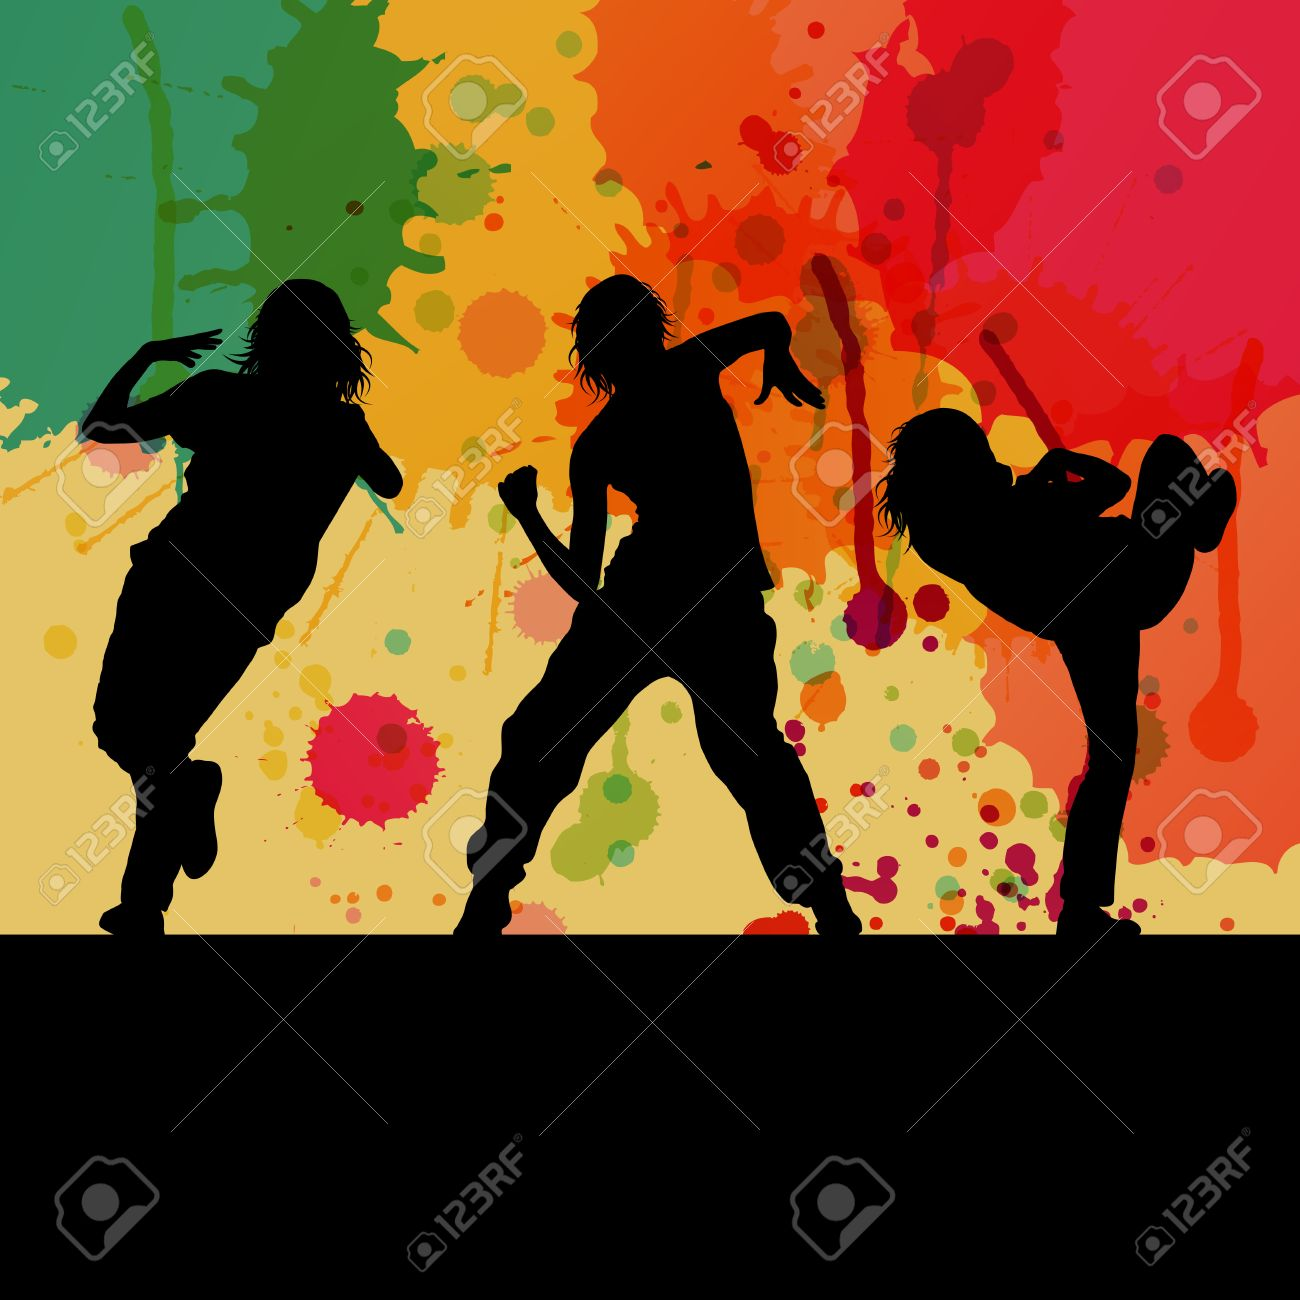 Girl dance silhouette vector background concept for poster Stock Vector - 22197190